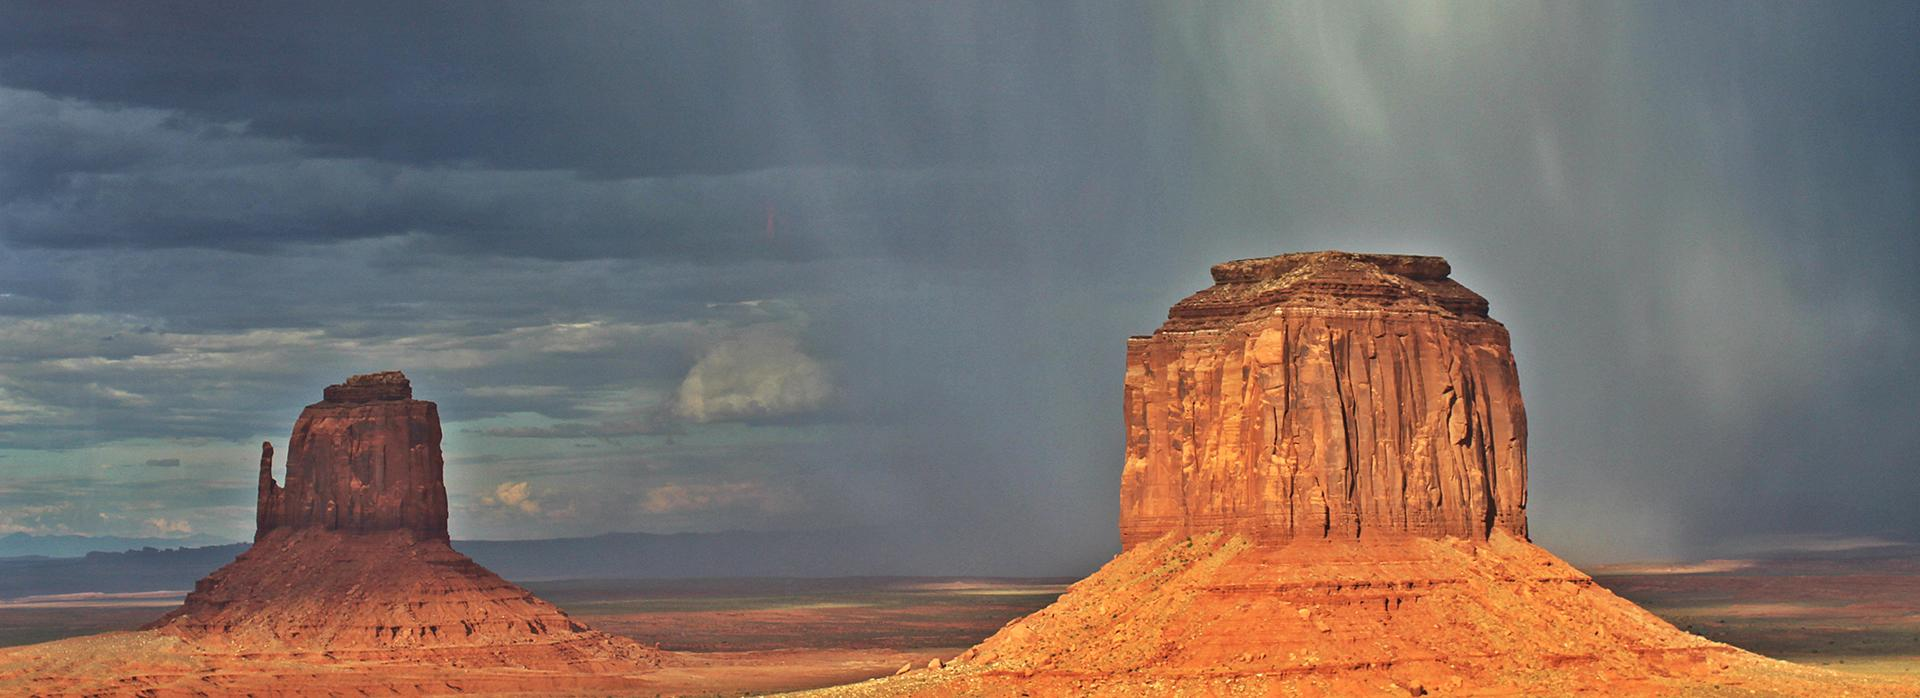 Monument Valley Climate